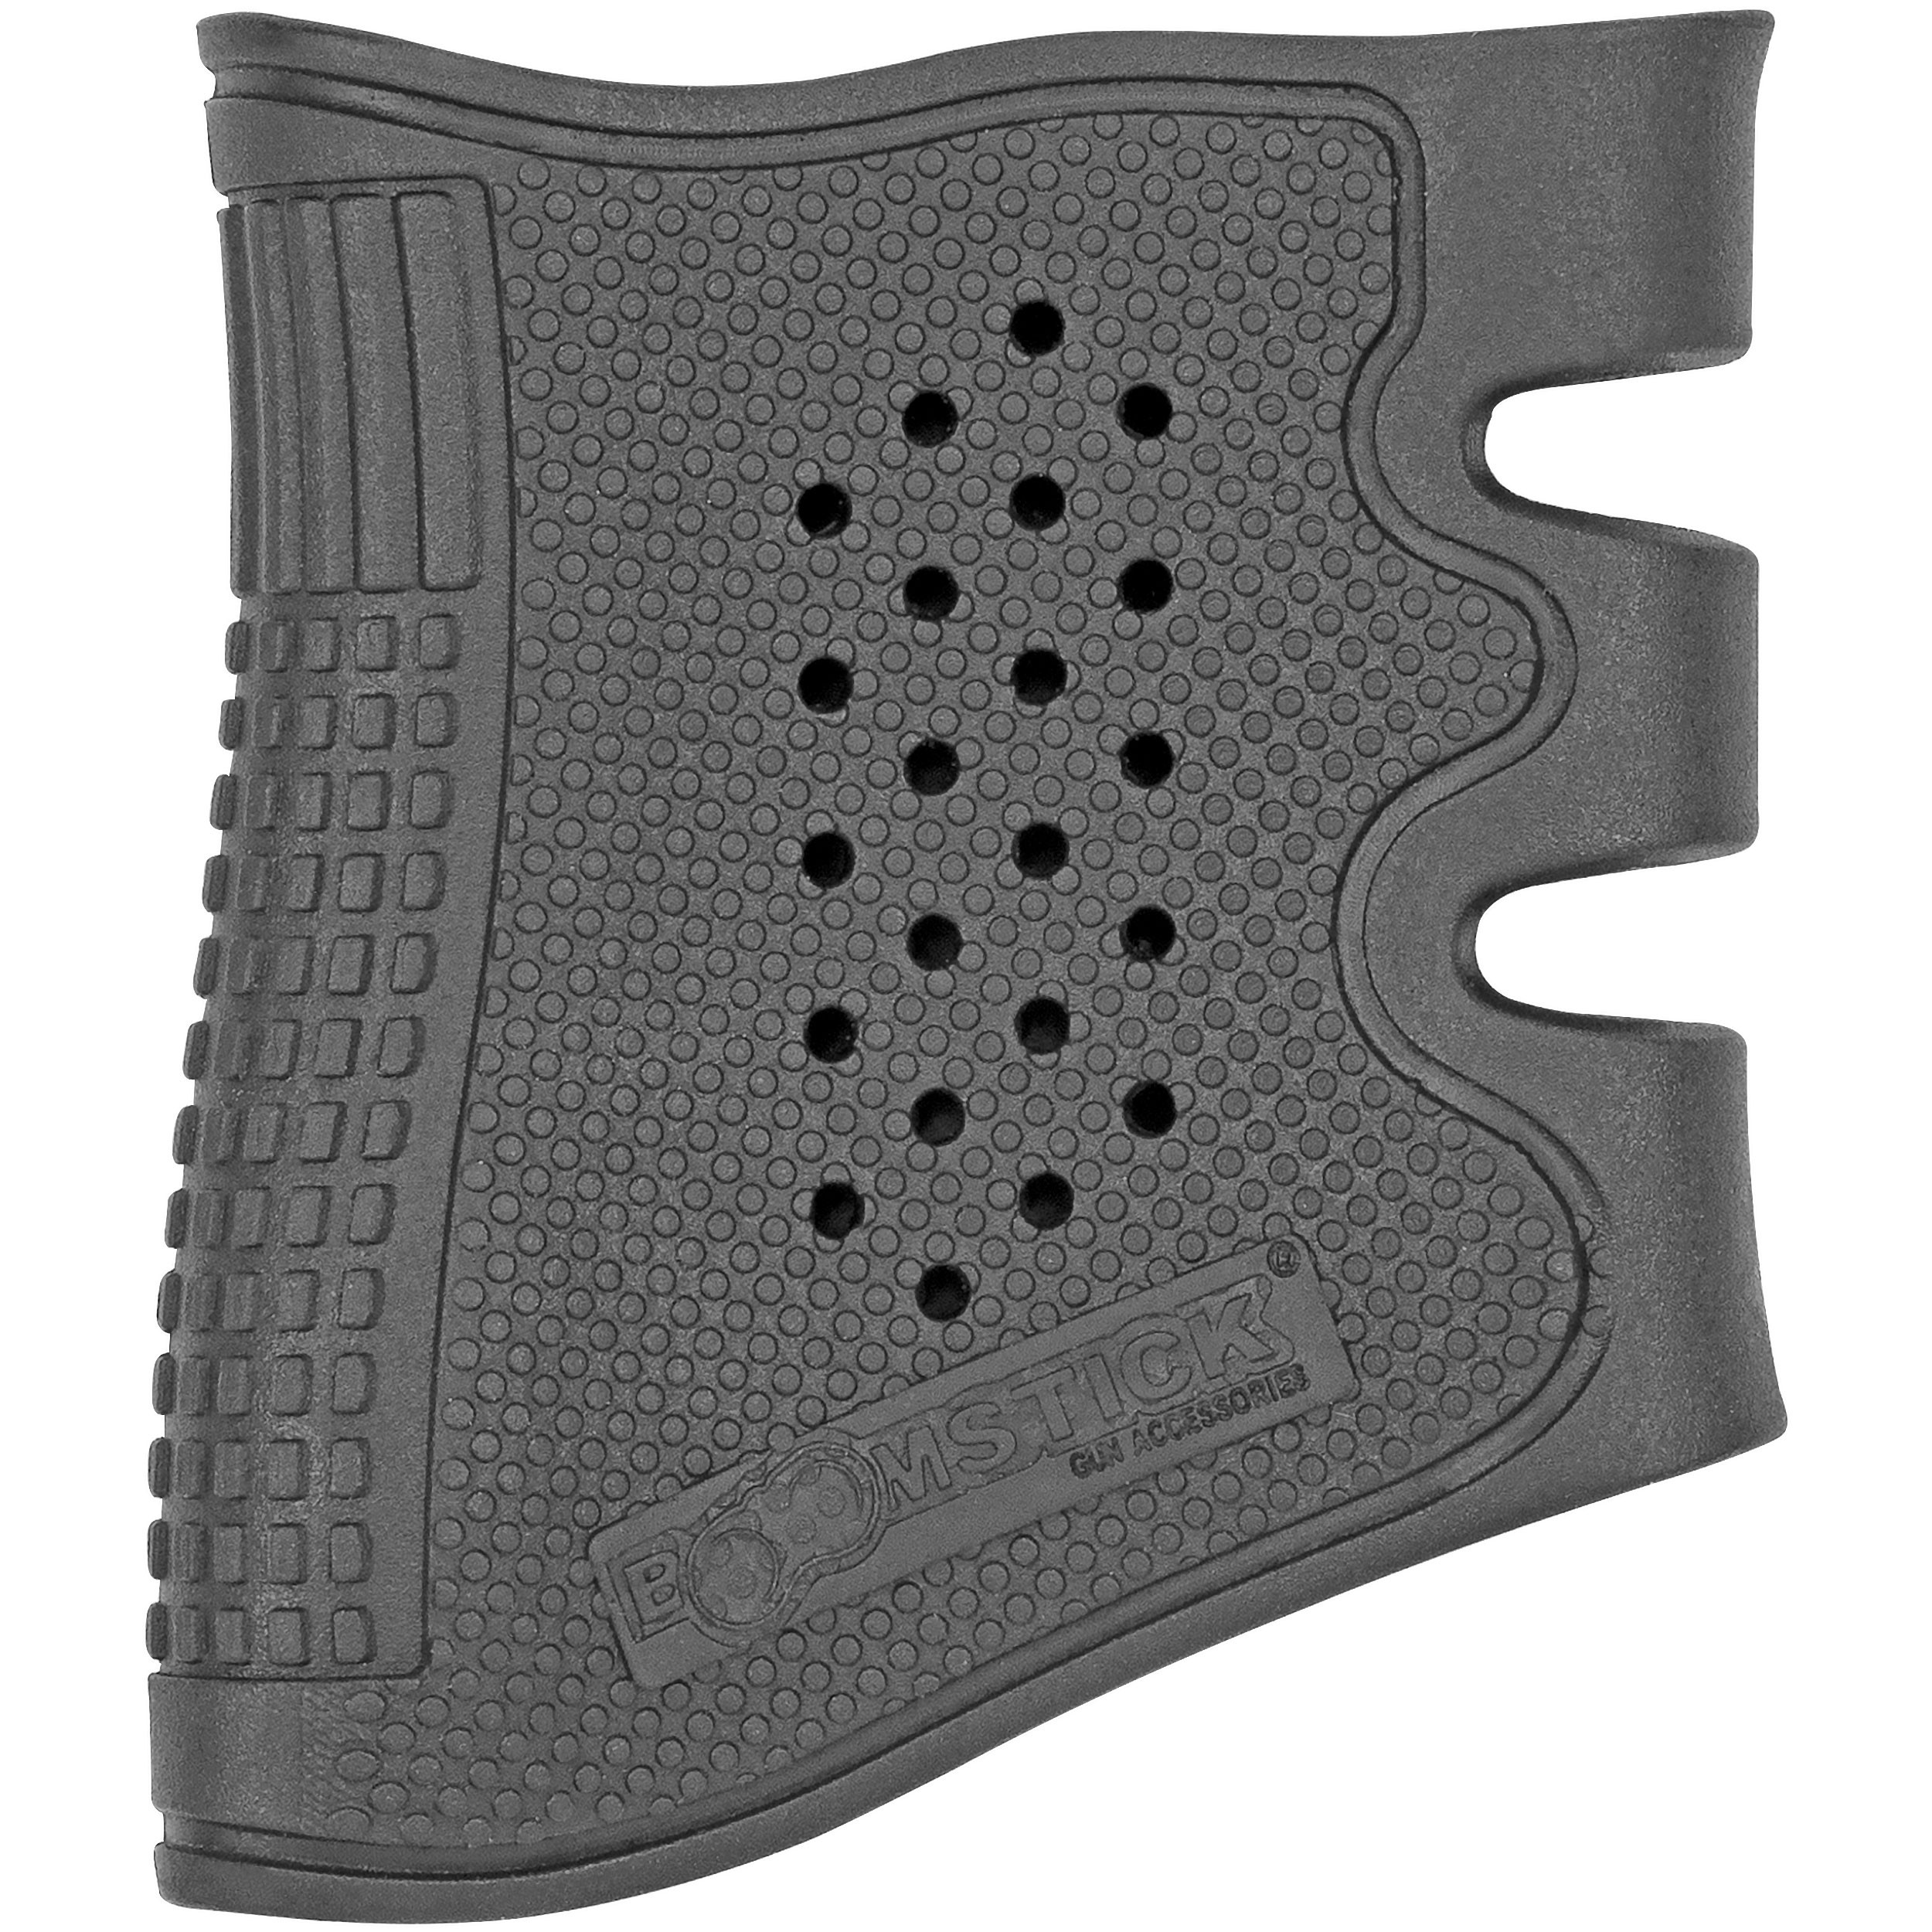 Tactical Rubber Grip Glove Sleeve for Glock Pistol: 17 19 20 21 22 23 25 31 32 34 35 37 38